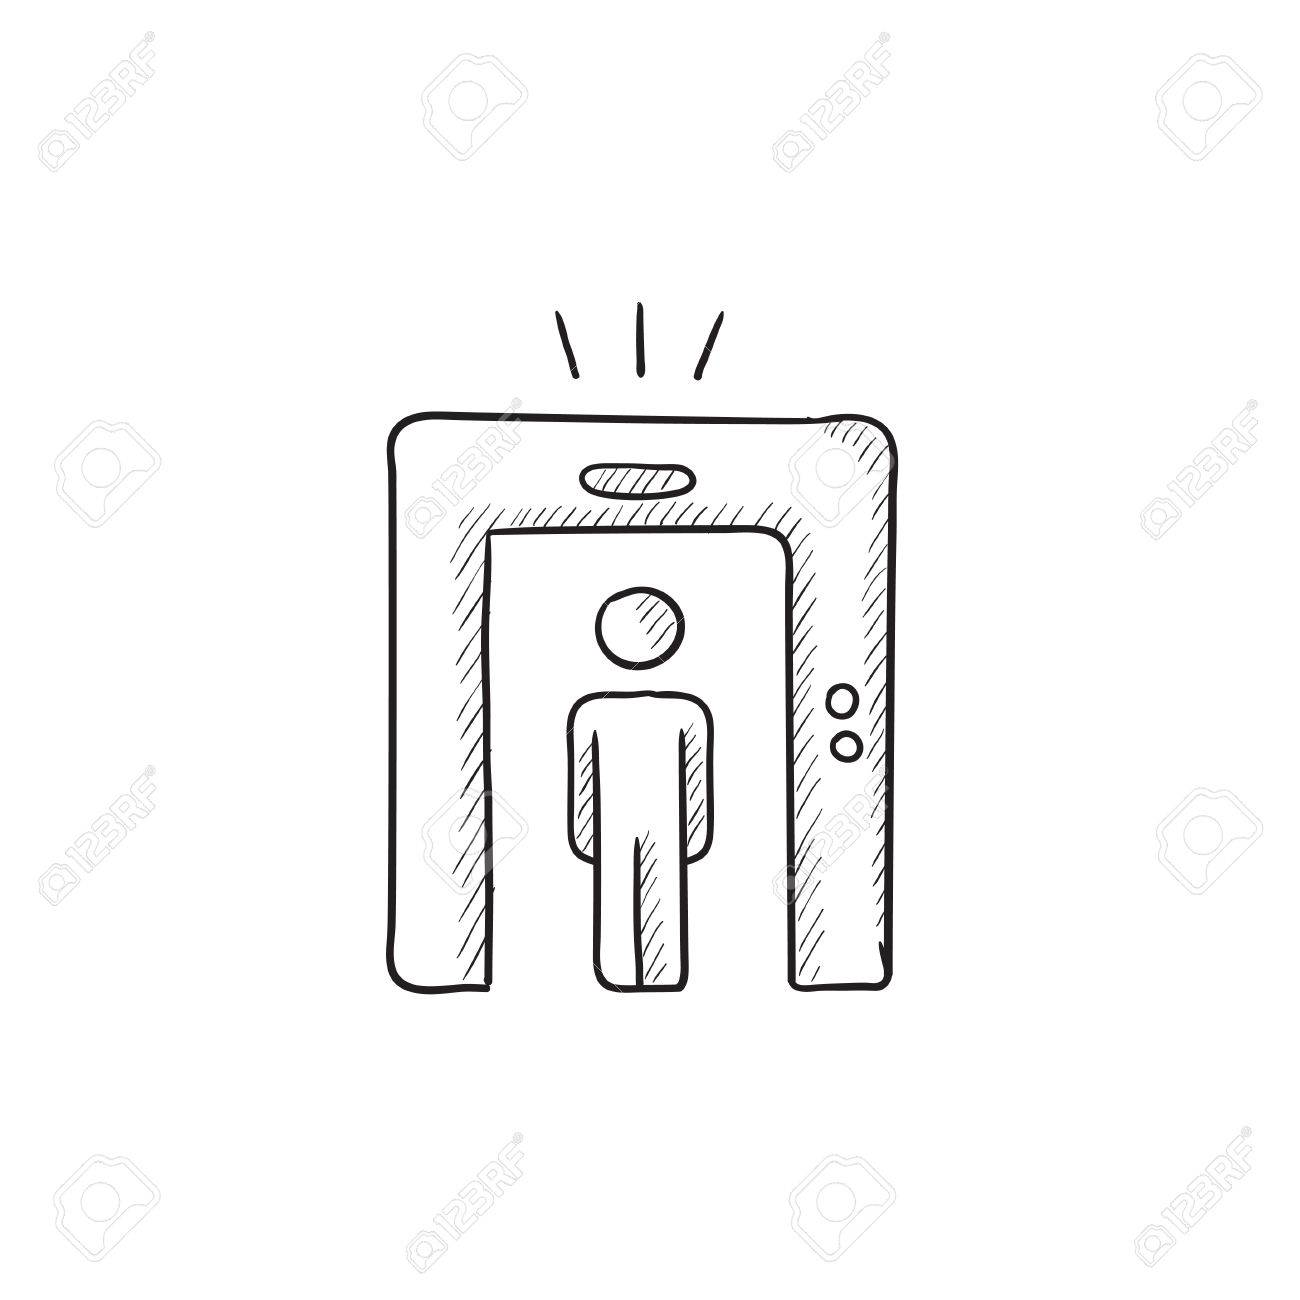 Man Going Through Metal Detector Gate Vector Sketch Icon Isolated